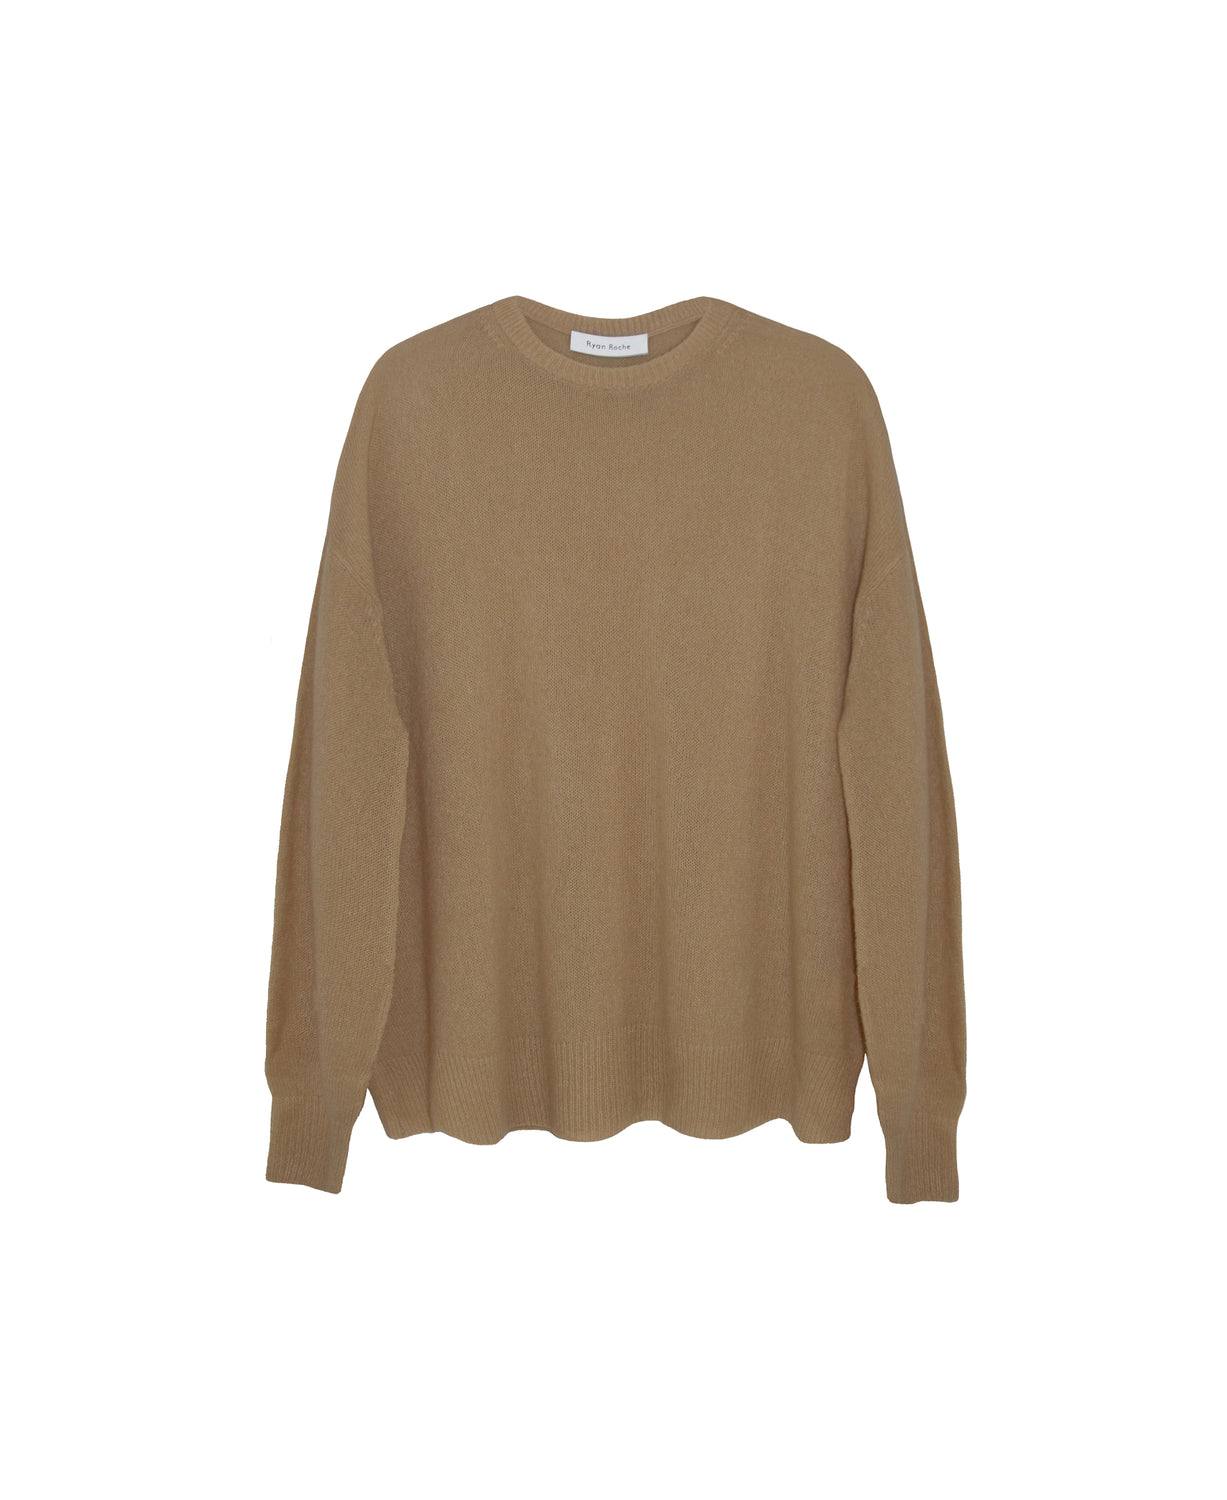 Feather weight, cloud cashmere and silk sweater in gorgeous in latte